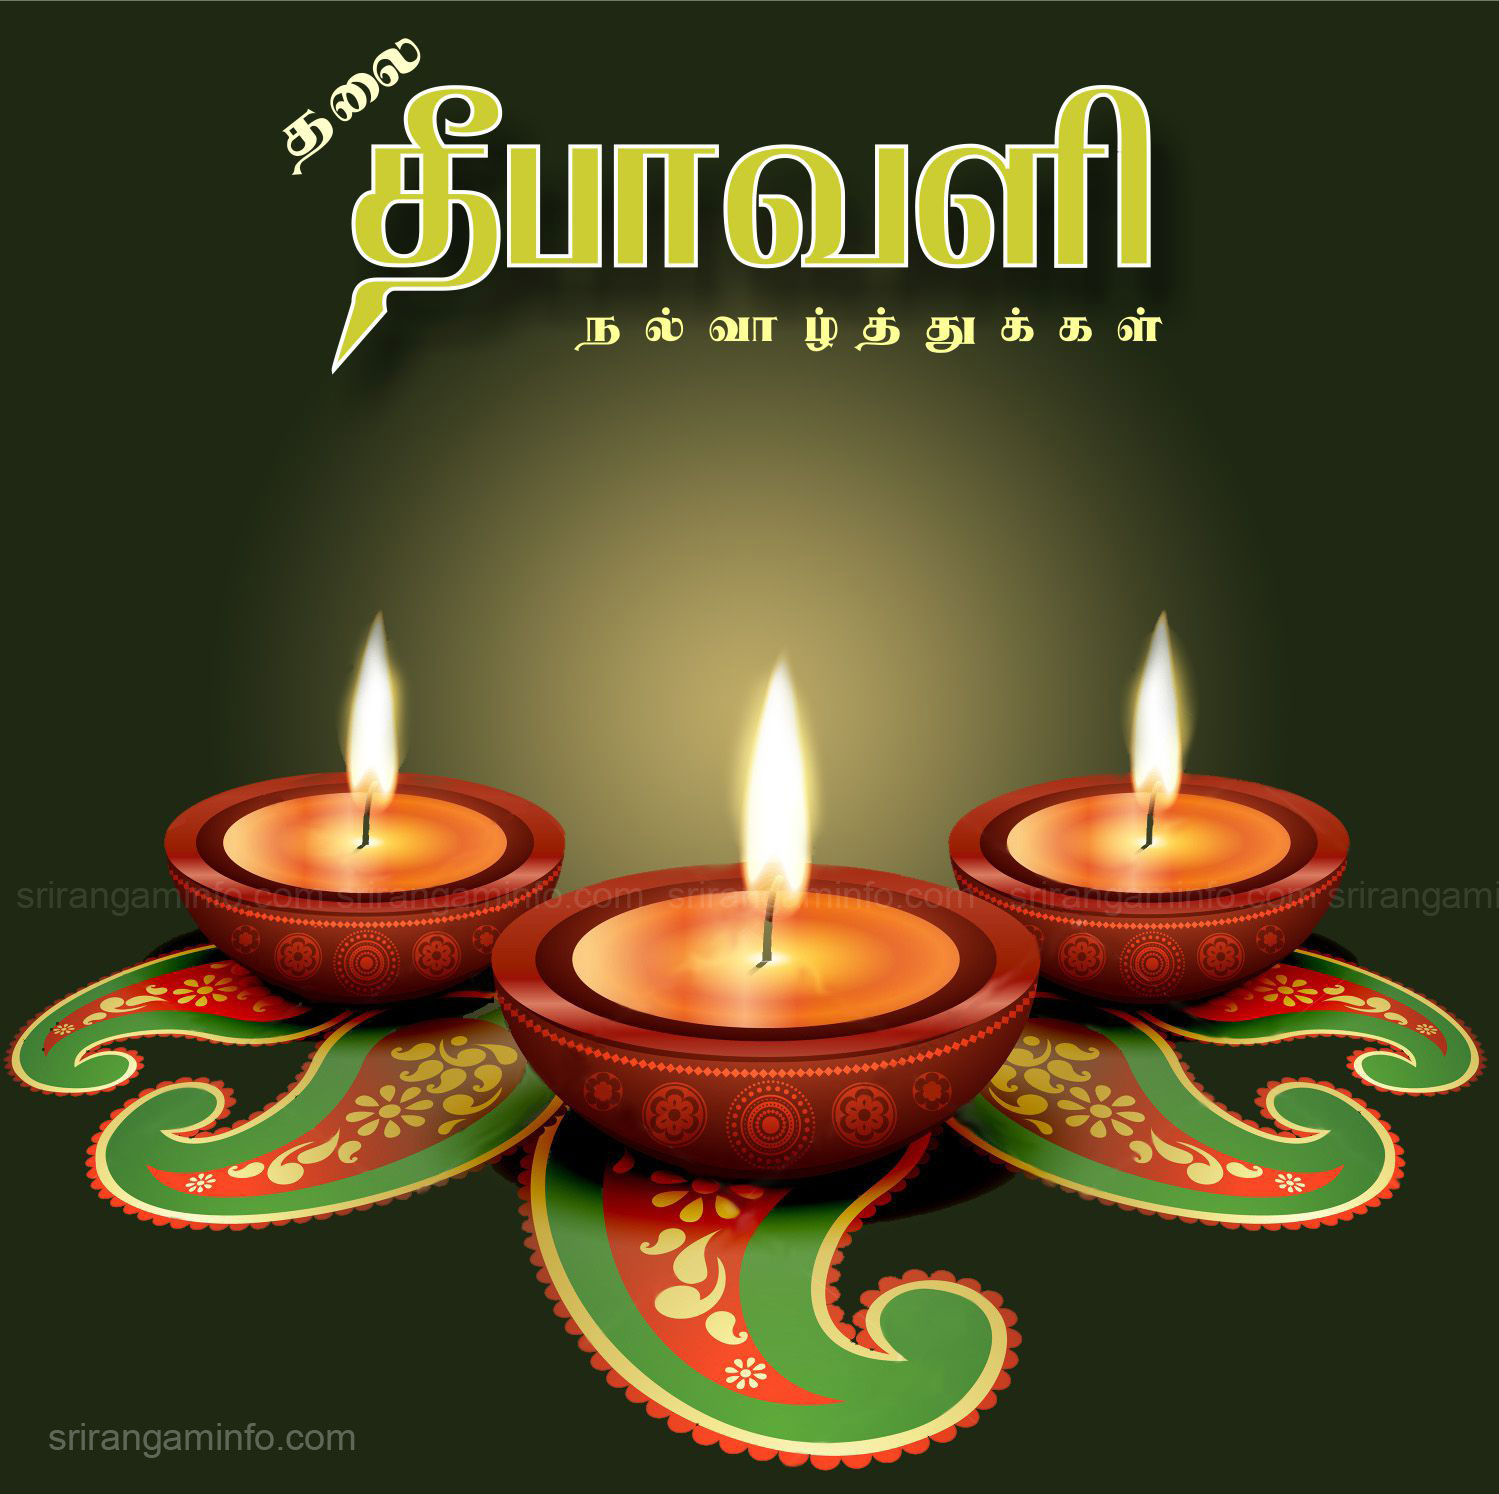 thalai deepavali greetings